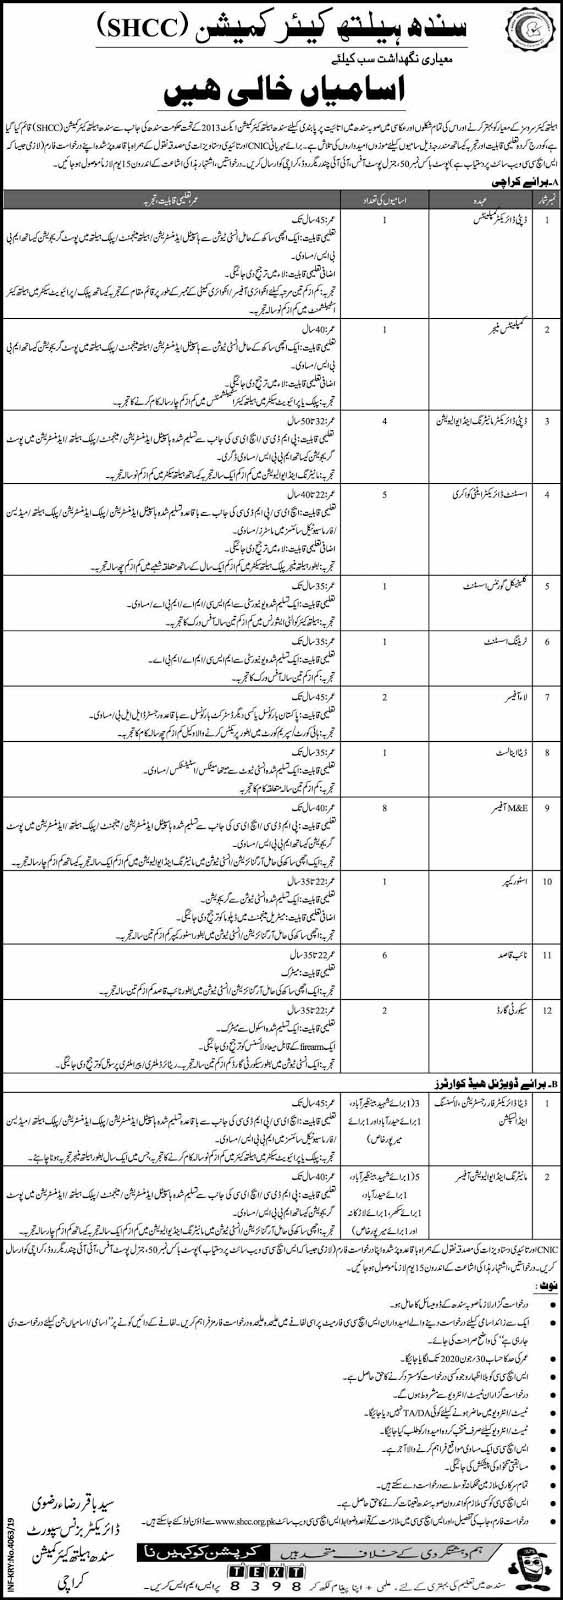 Sindh Healthcare Commission SHCC July 2019